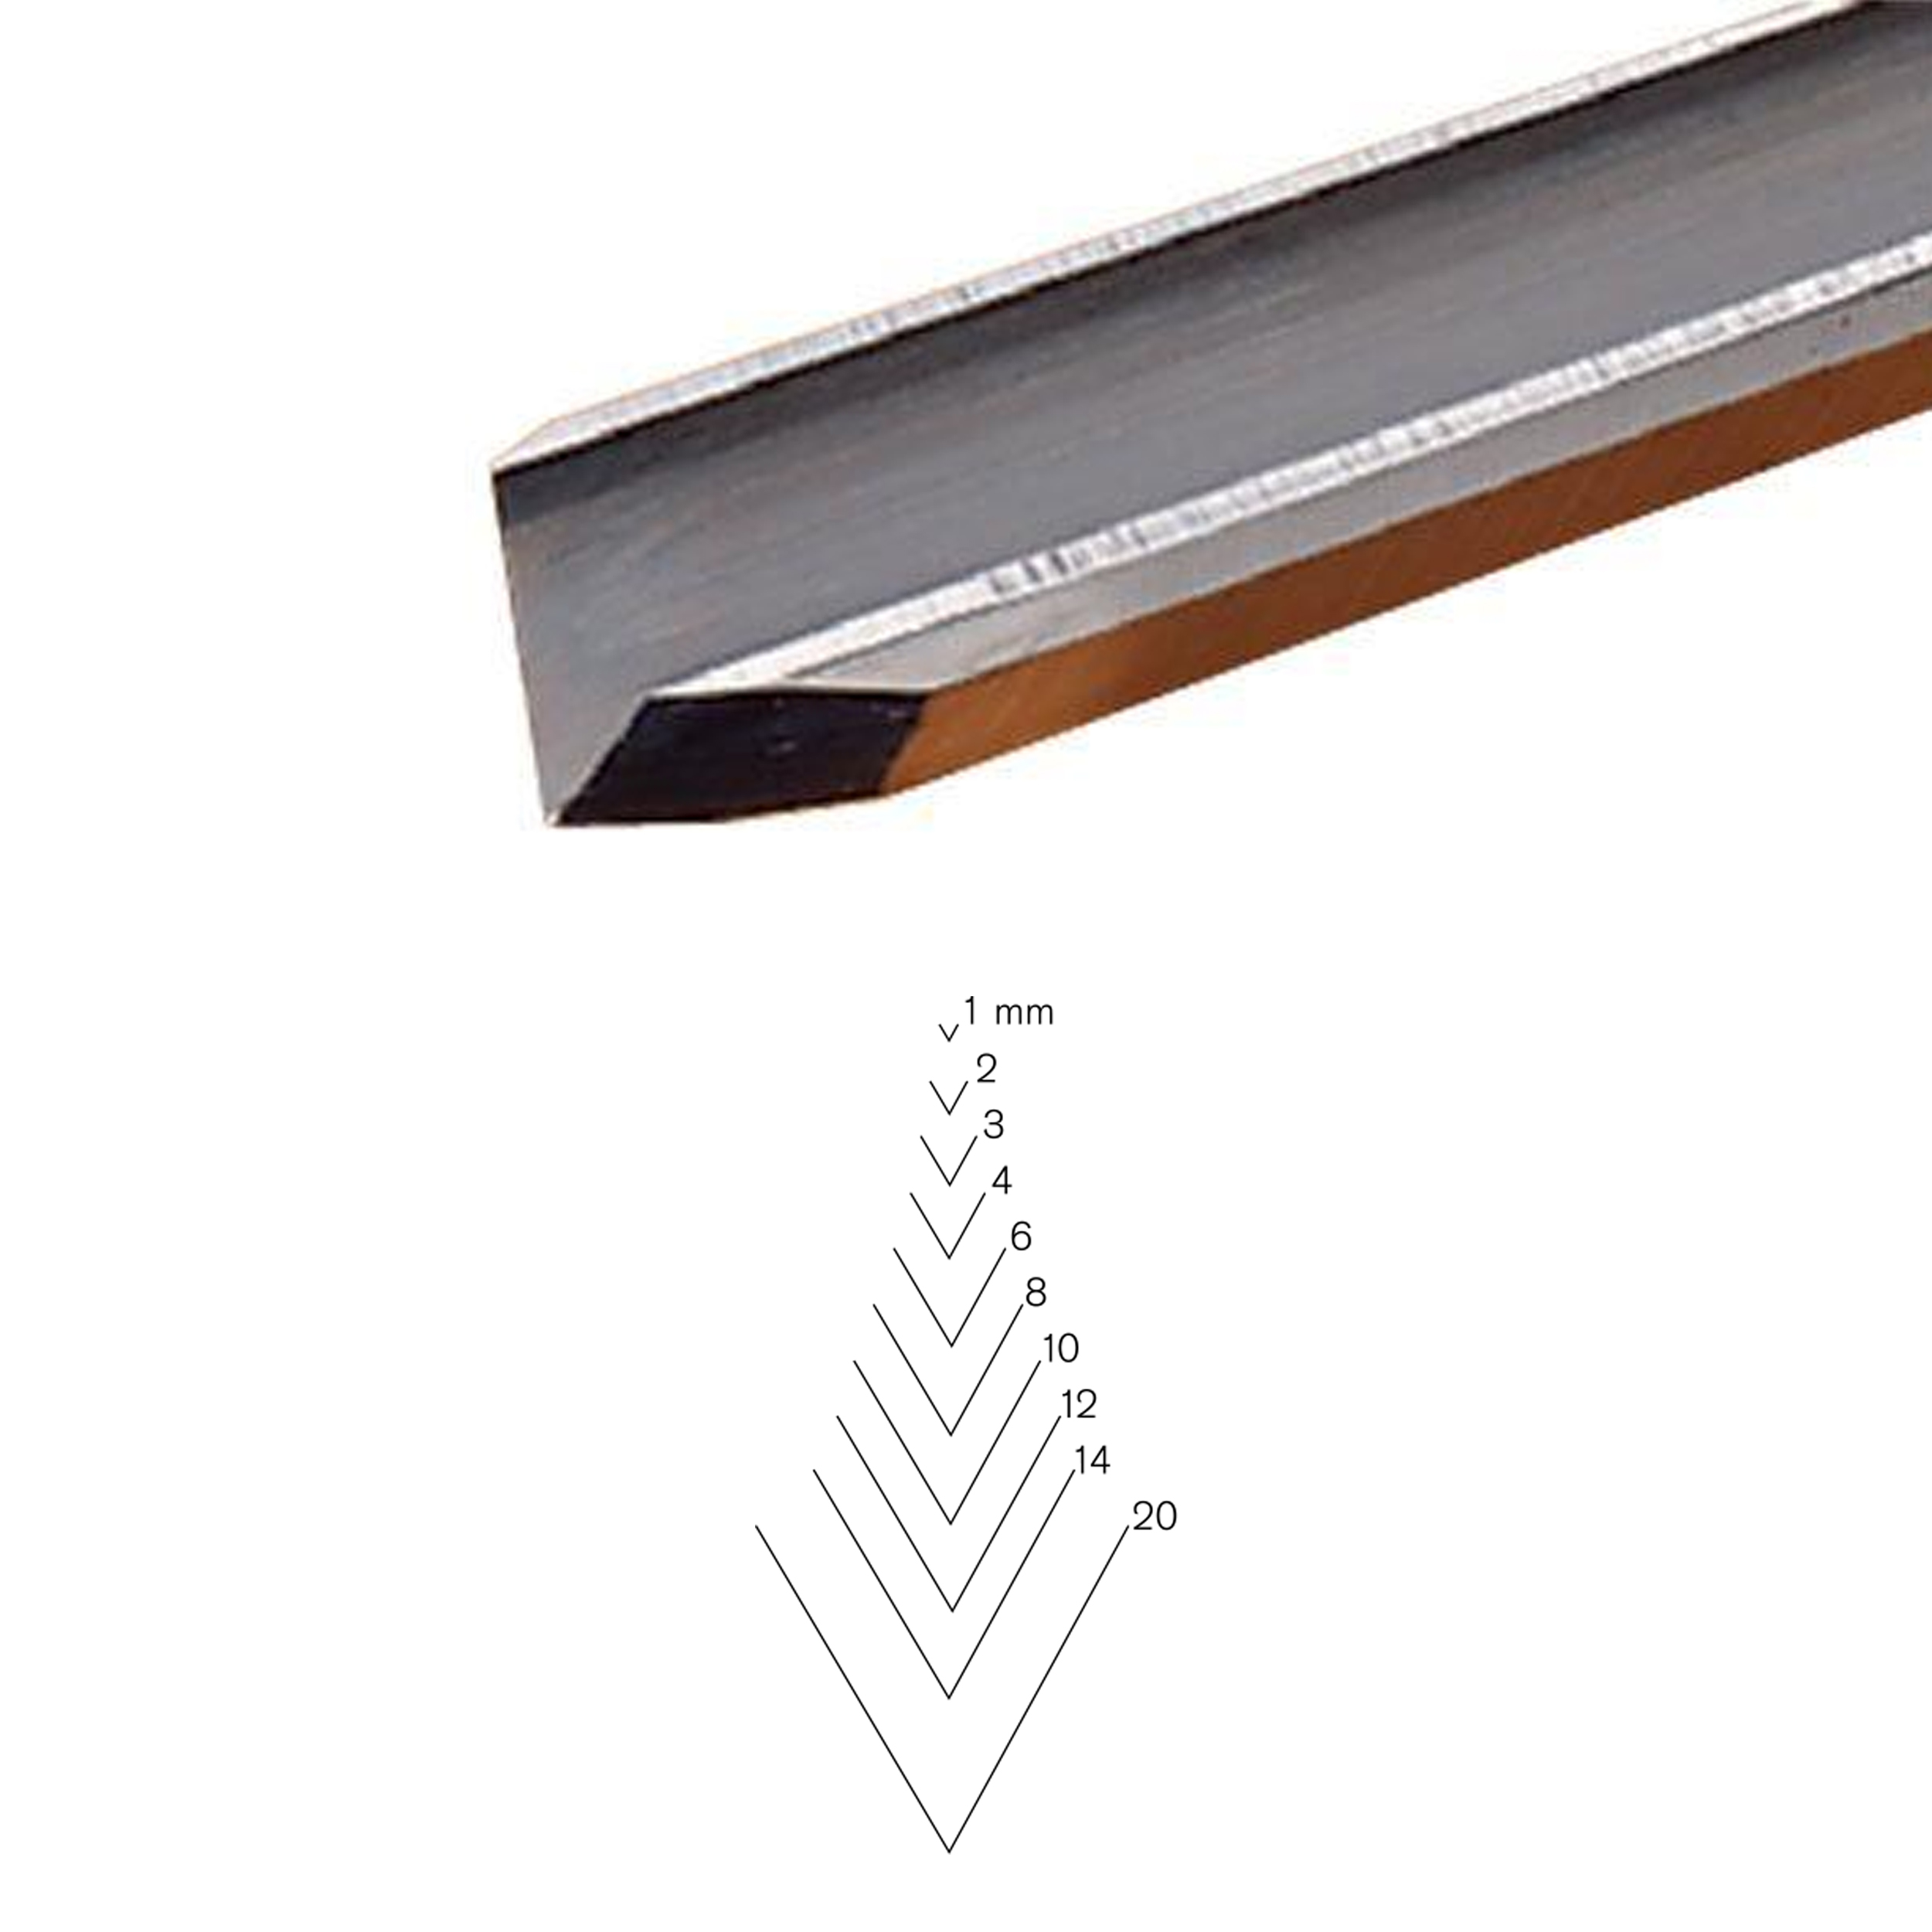 #12 Sweep V-Parting Tool, 8 mm, Full Size